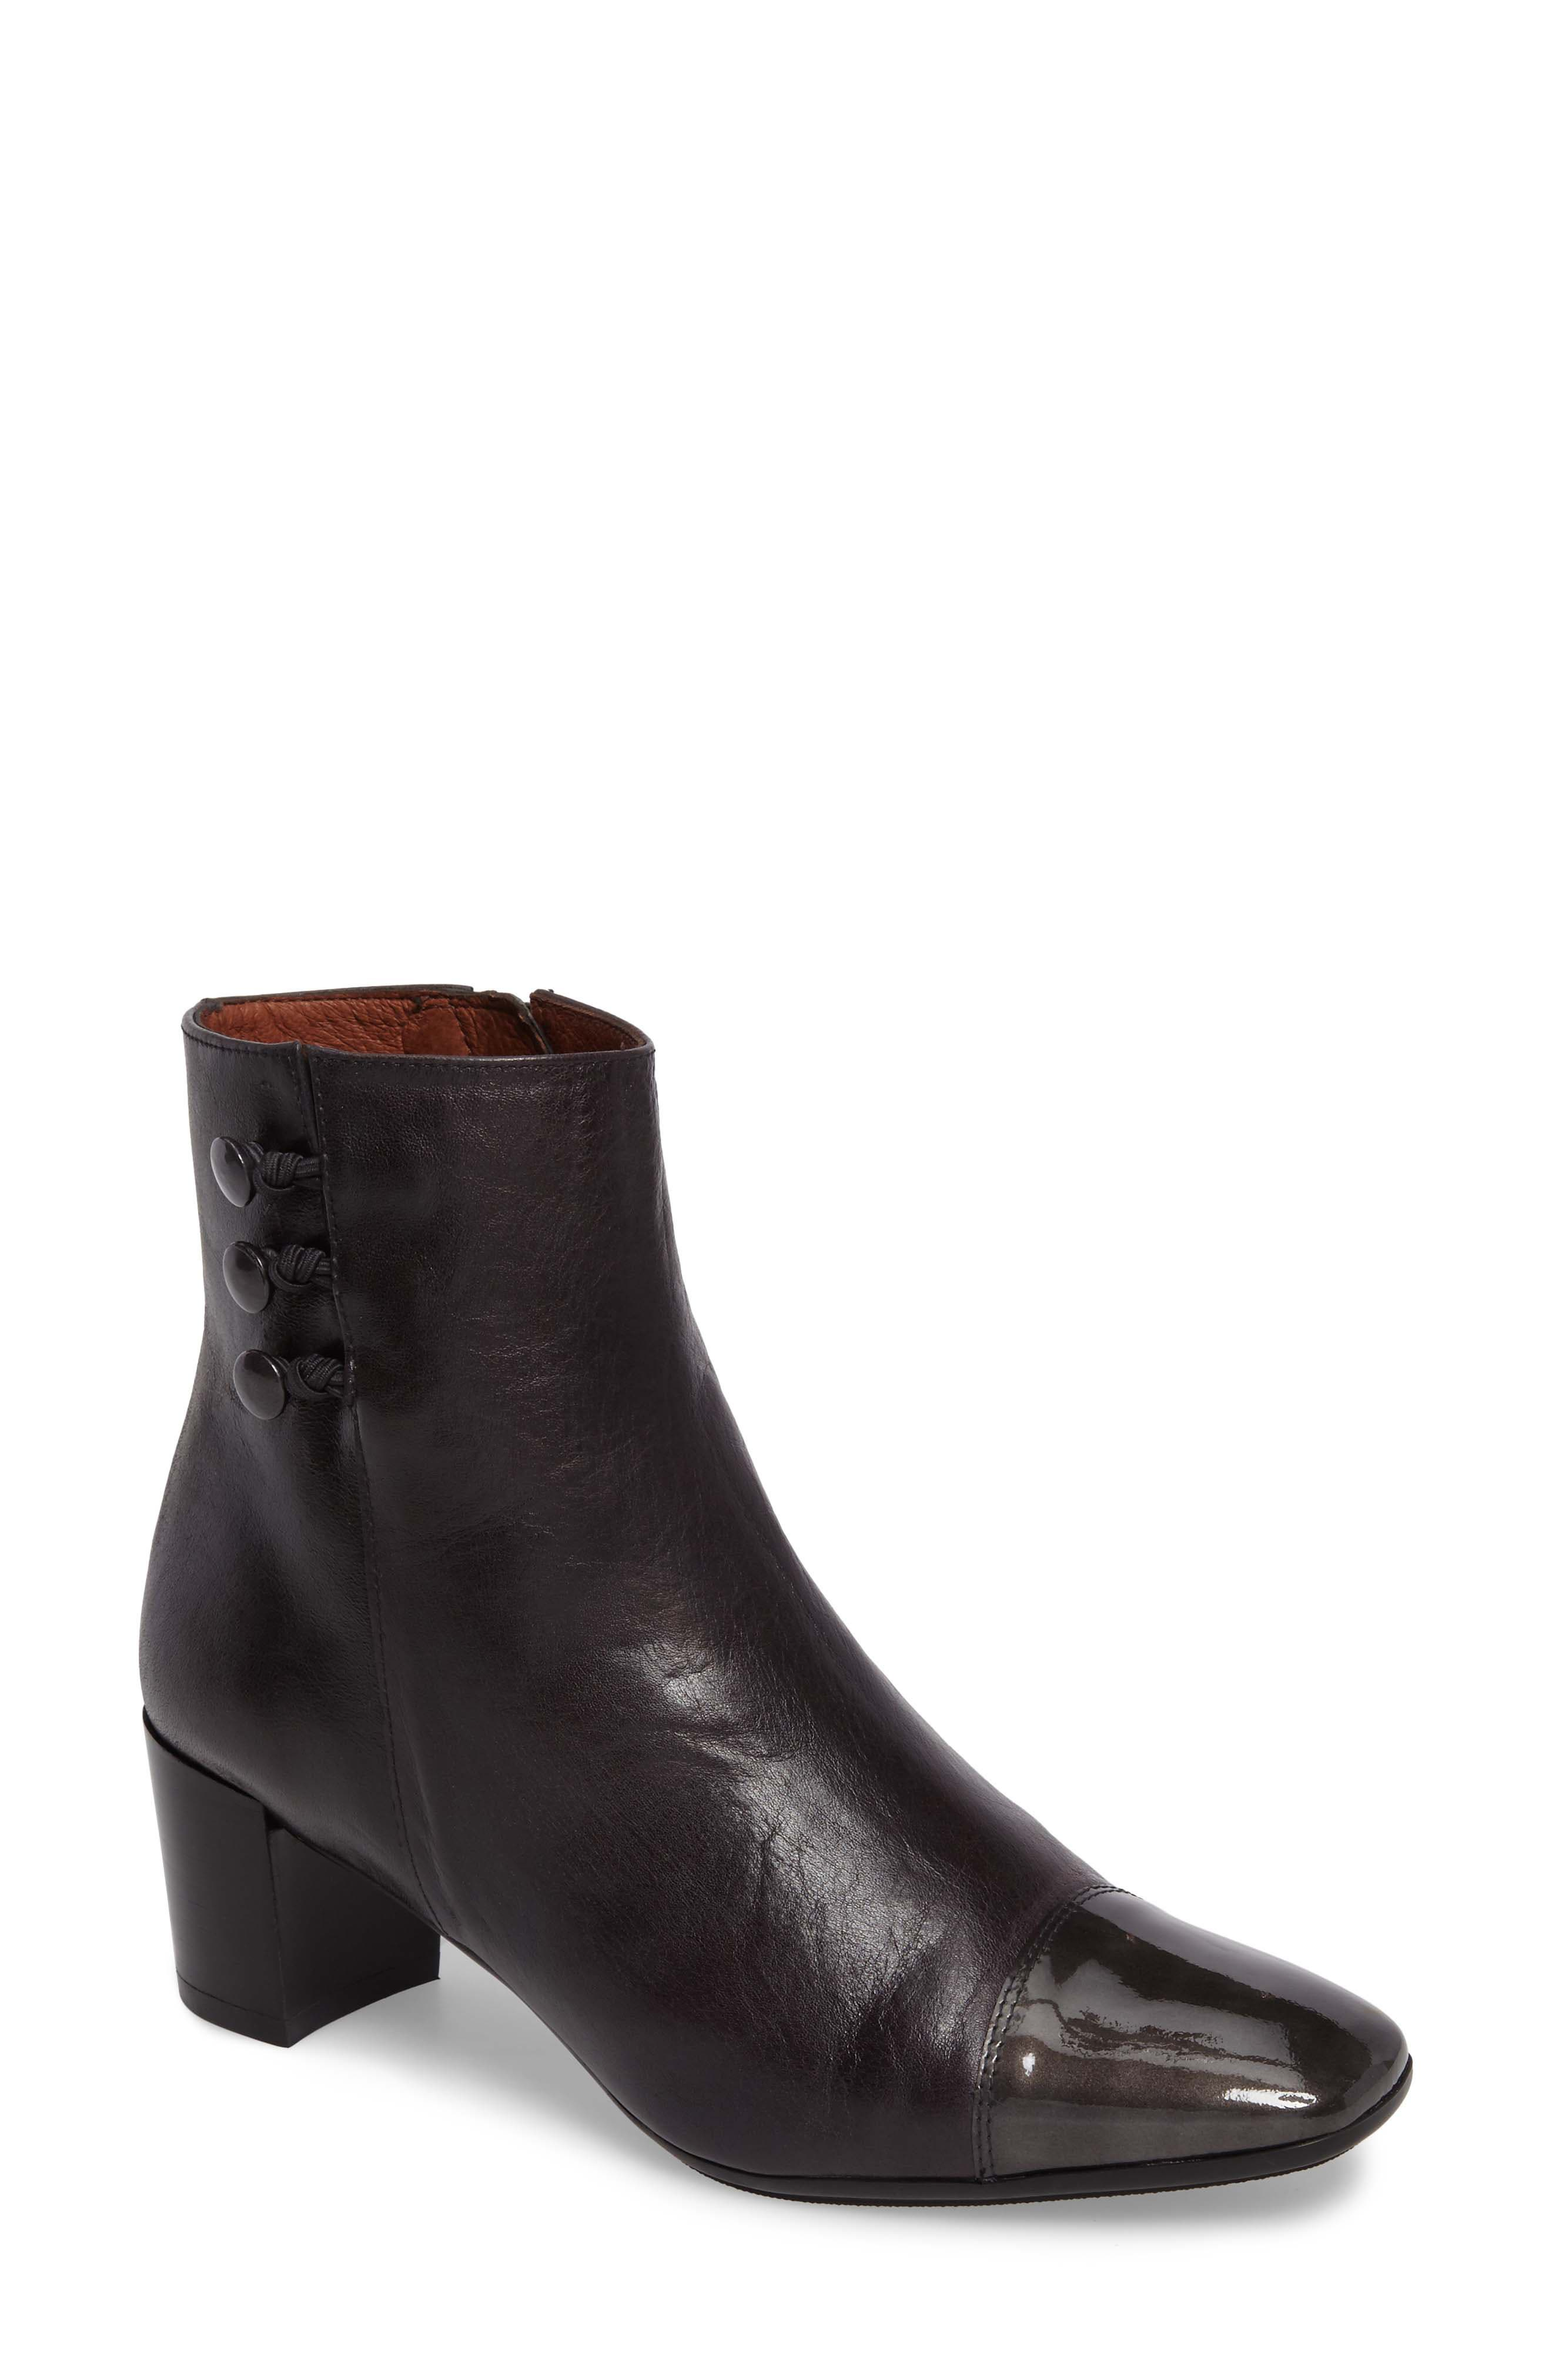 Kirby Bootie,                         Main,                         color, Grafito Leather